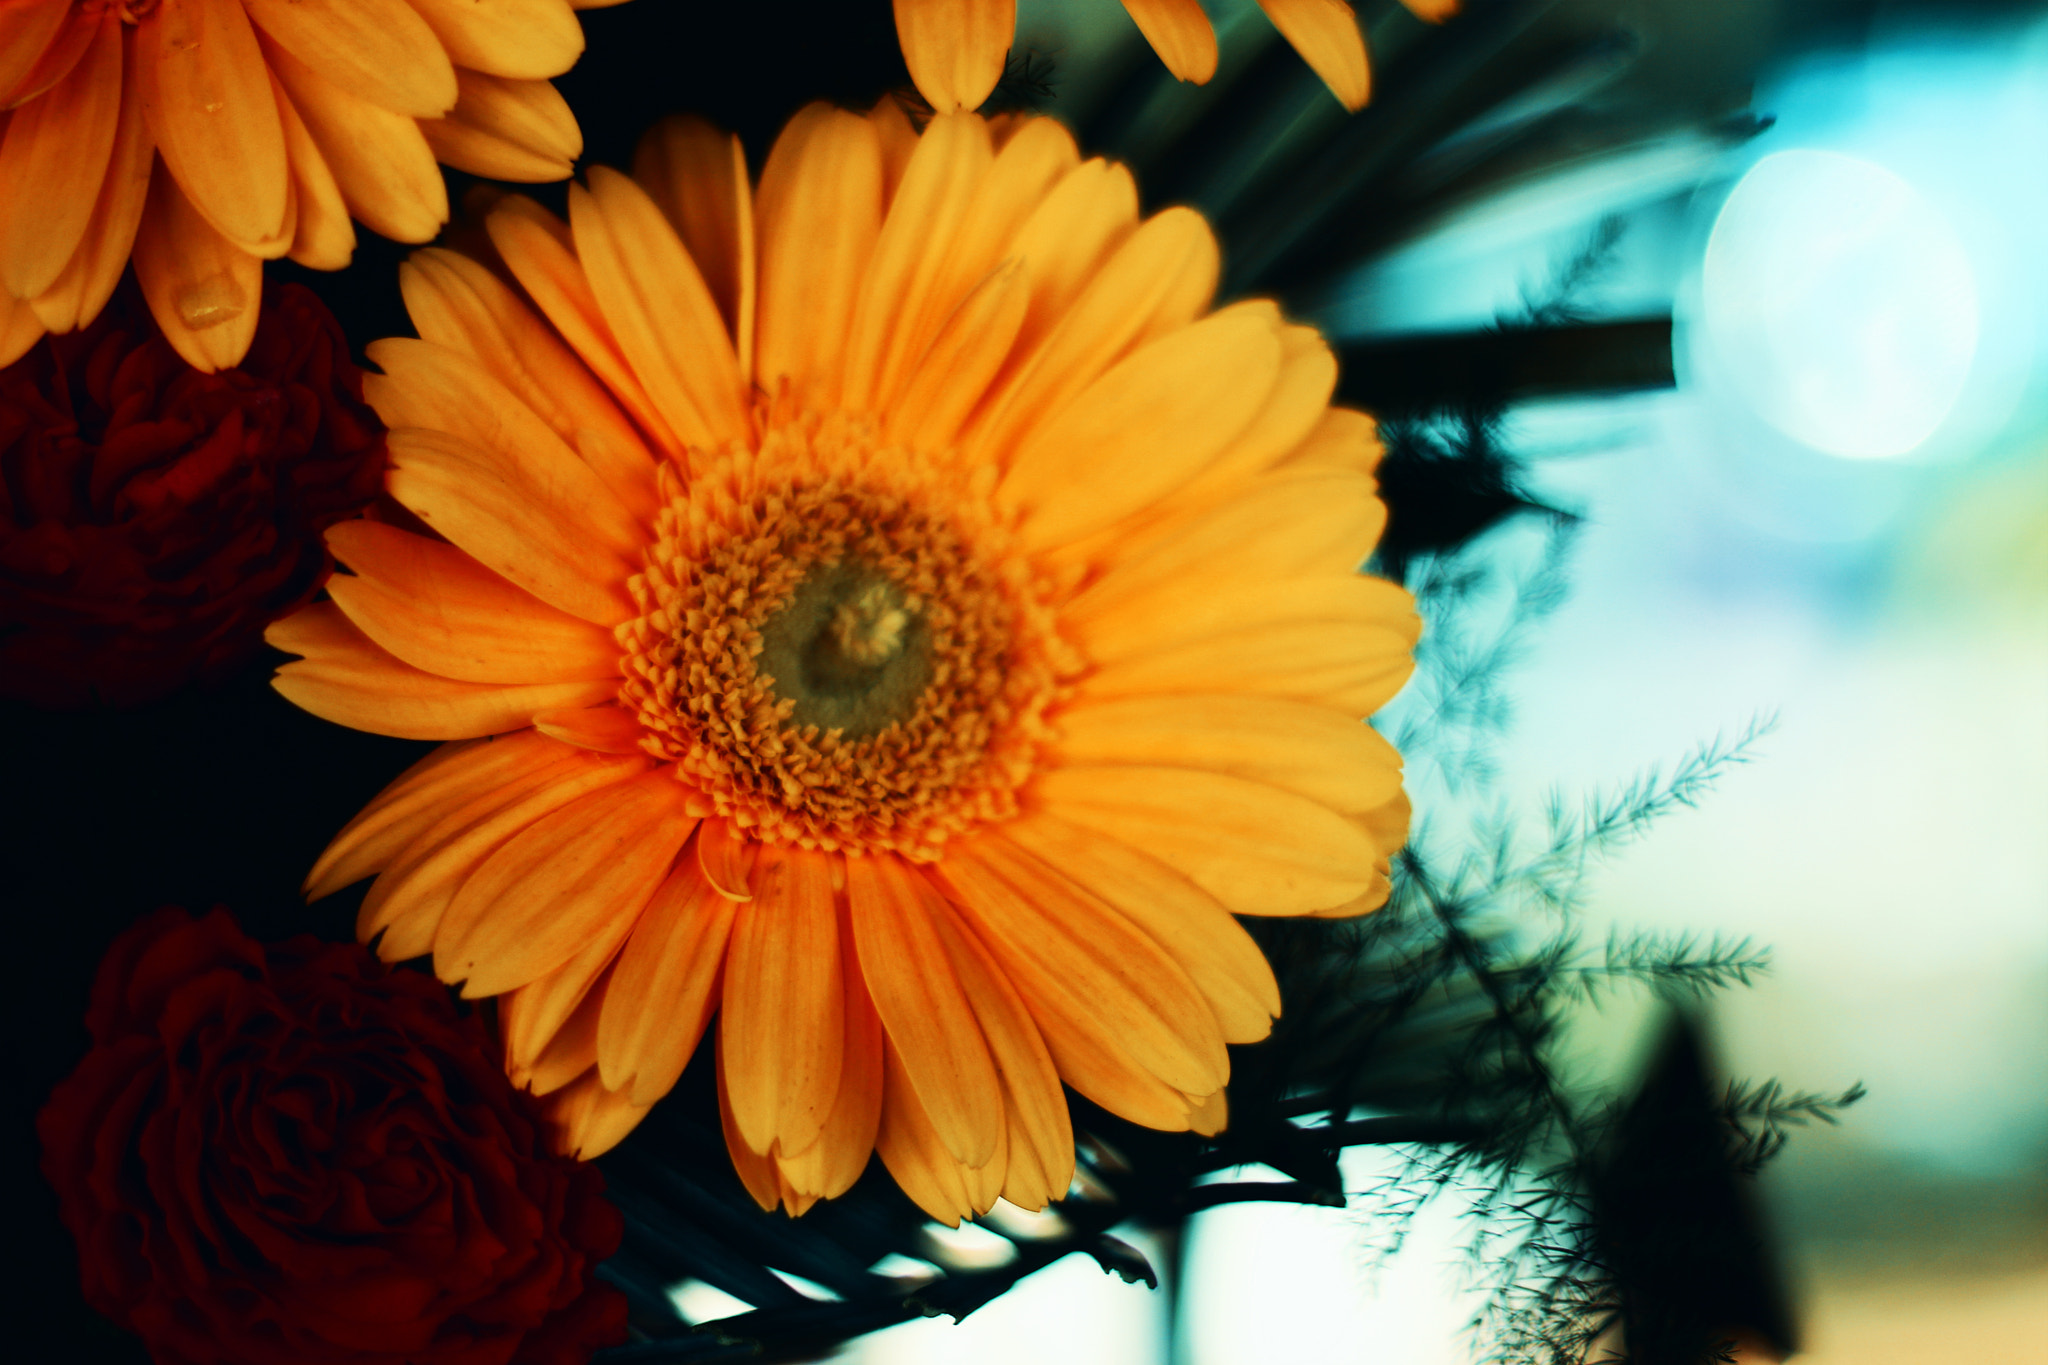 Photograph Flowers by Ashish Gaikwad on 500px